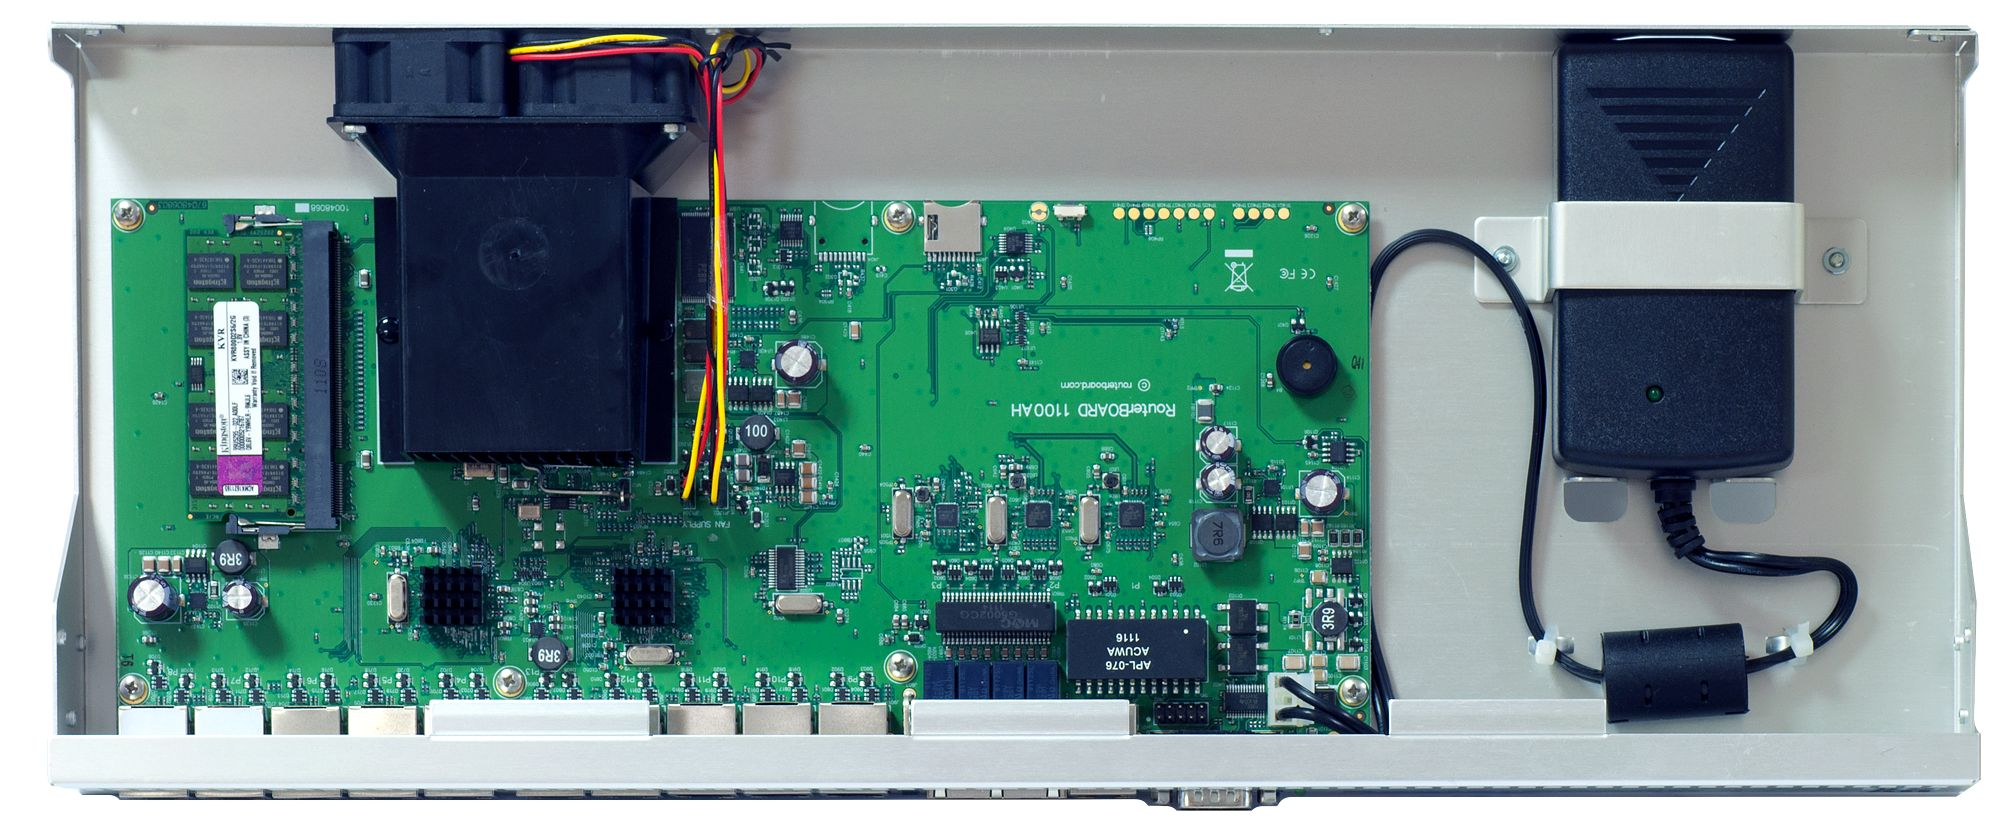 Rb1100ahx2 Mikrotik Routerboard Lisconet